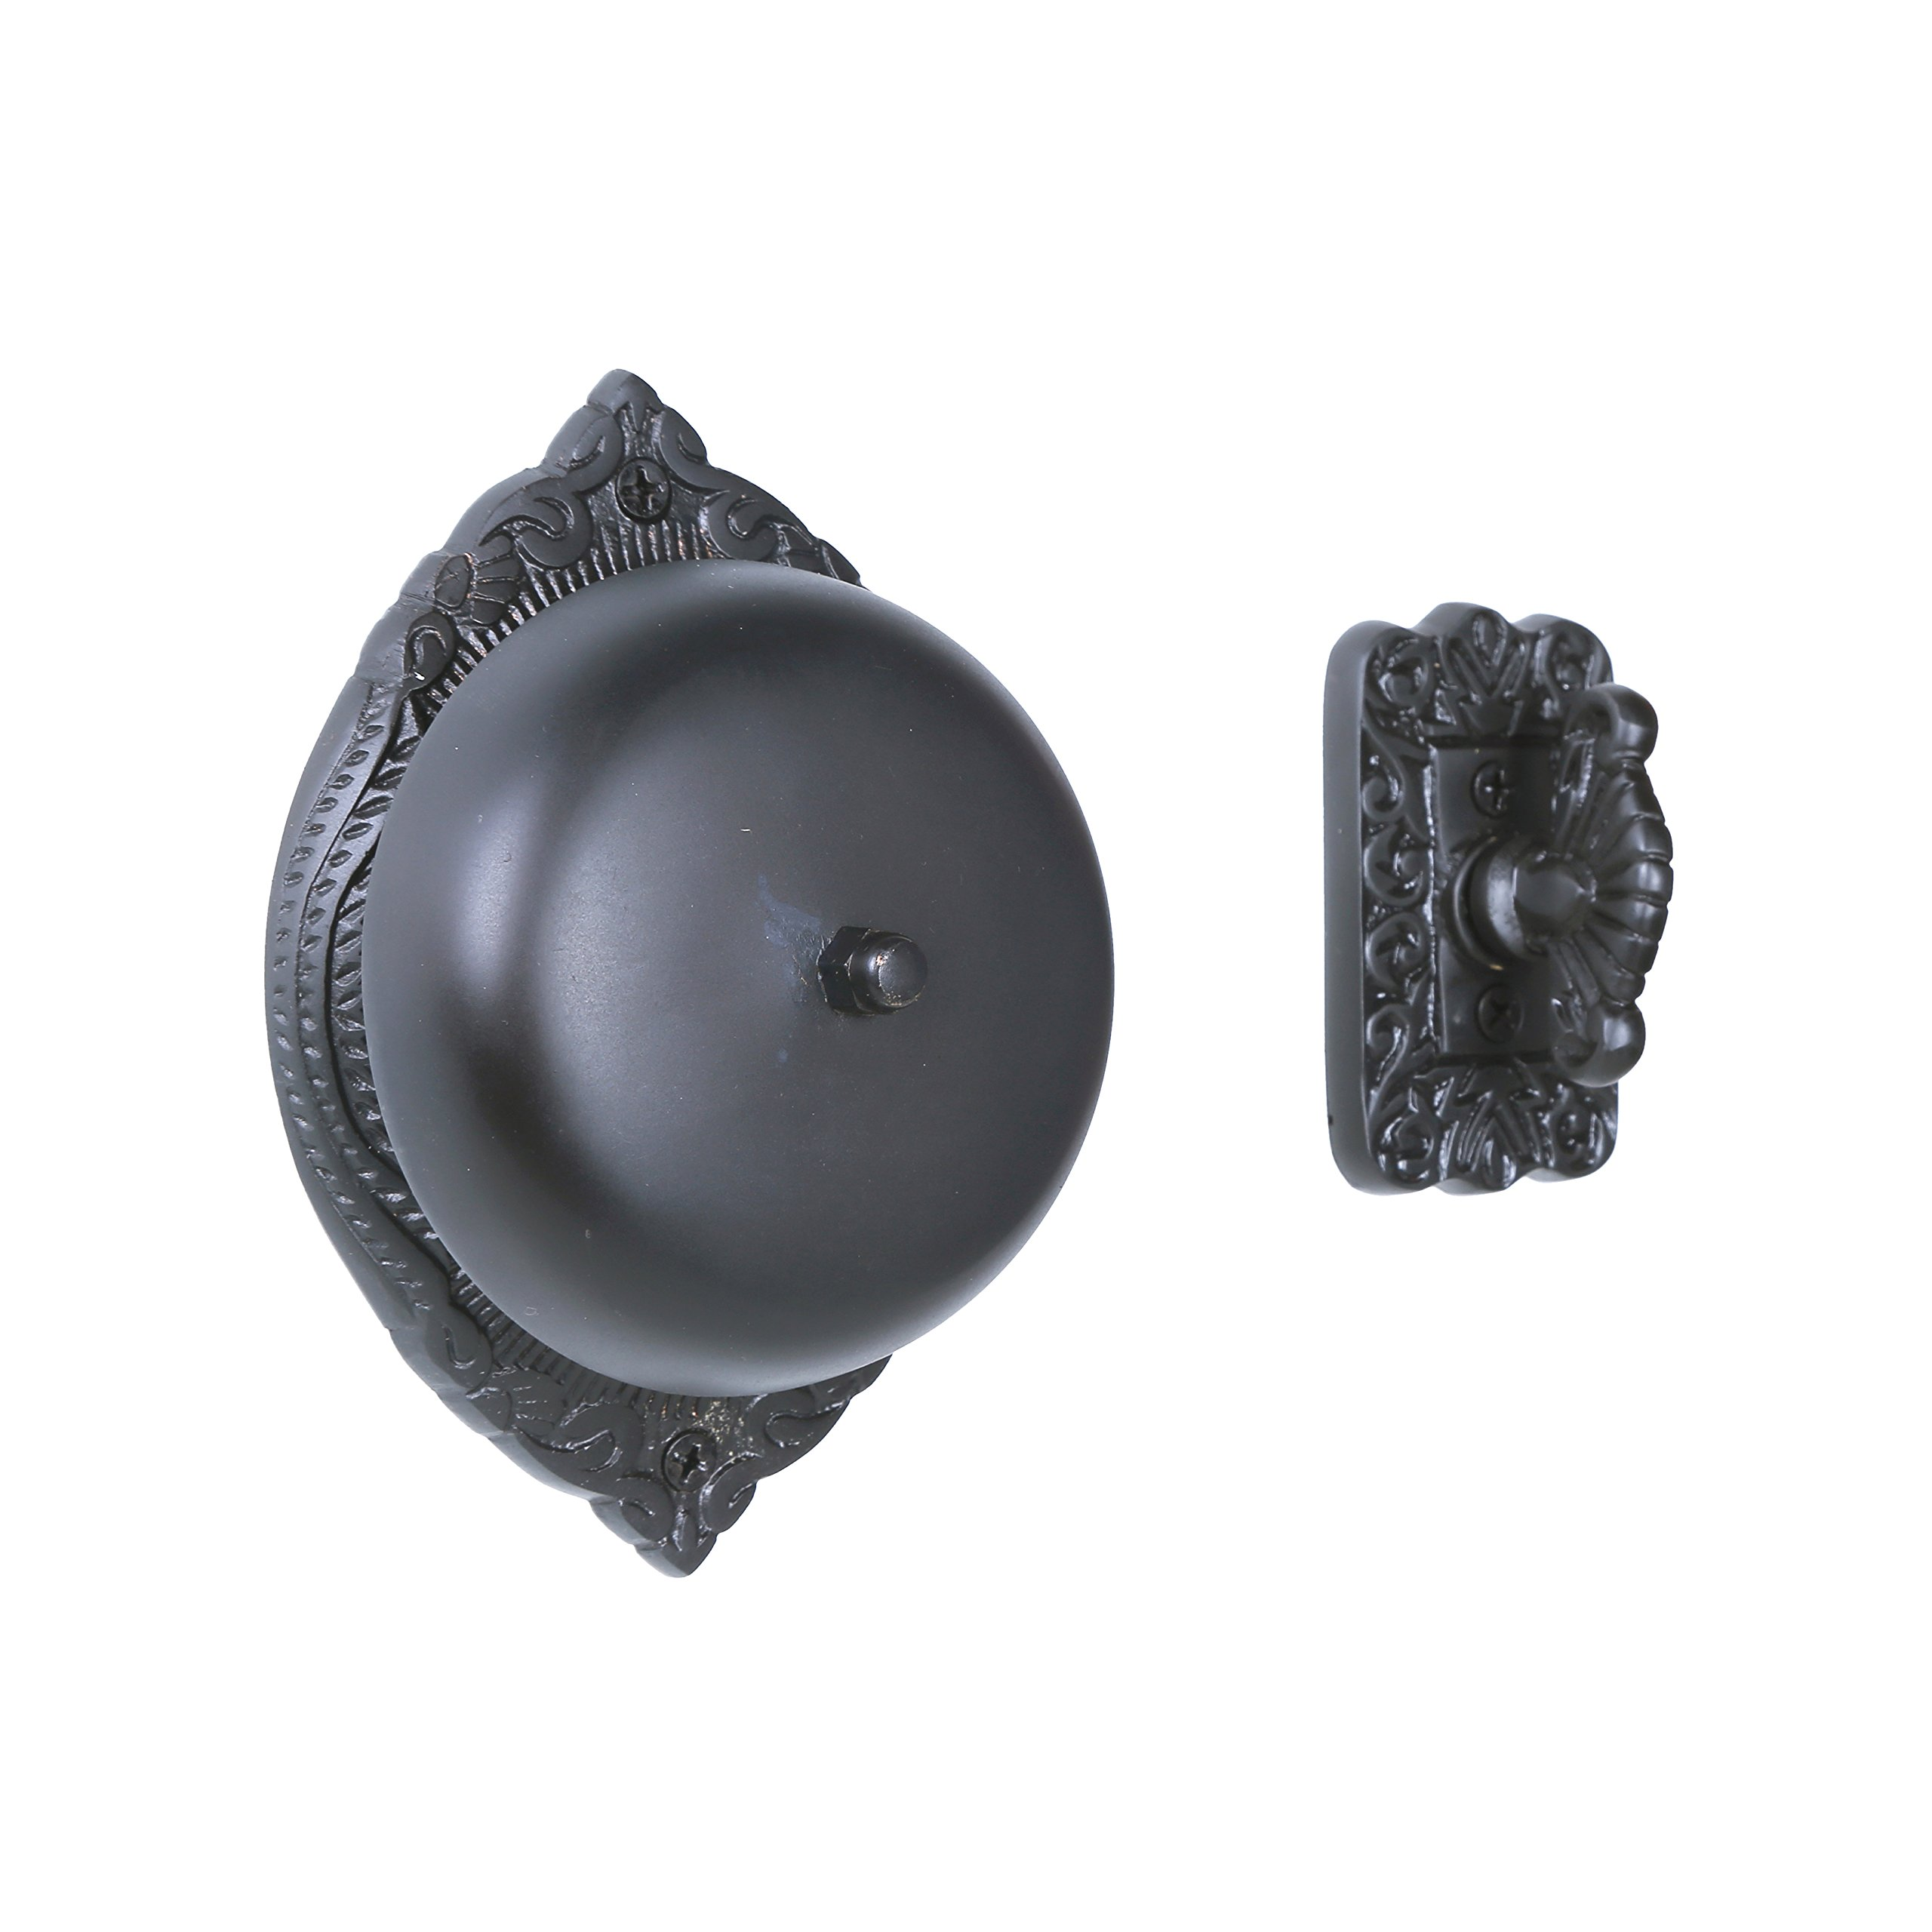 Twist Hand-Turn Solid Brass Wireless Mechanical Doorbell Chime in Oil Rubbed Bronze Finish, Vintage Decorative Antique Victorian Door Bell with Easy Installation